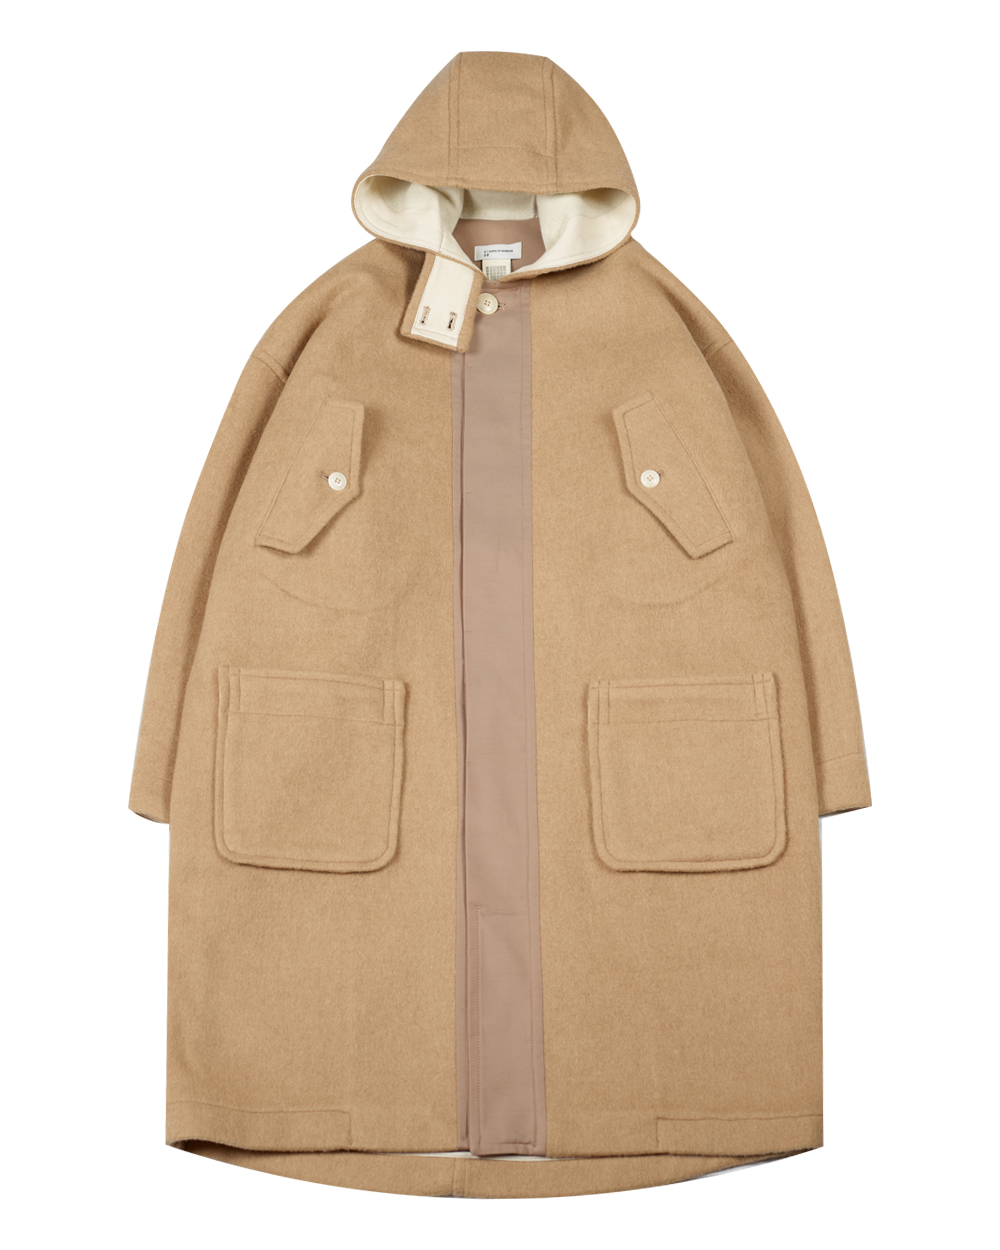 HOODED+WOOL+COAT+BEIGE+FRNT.jpg